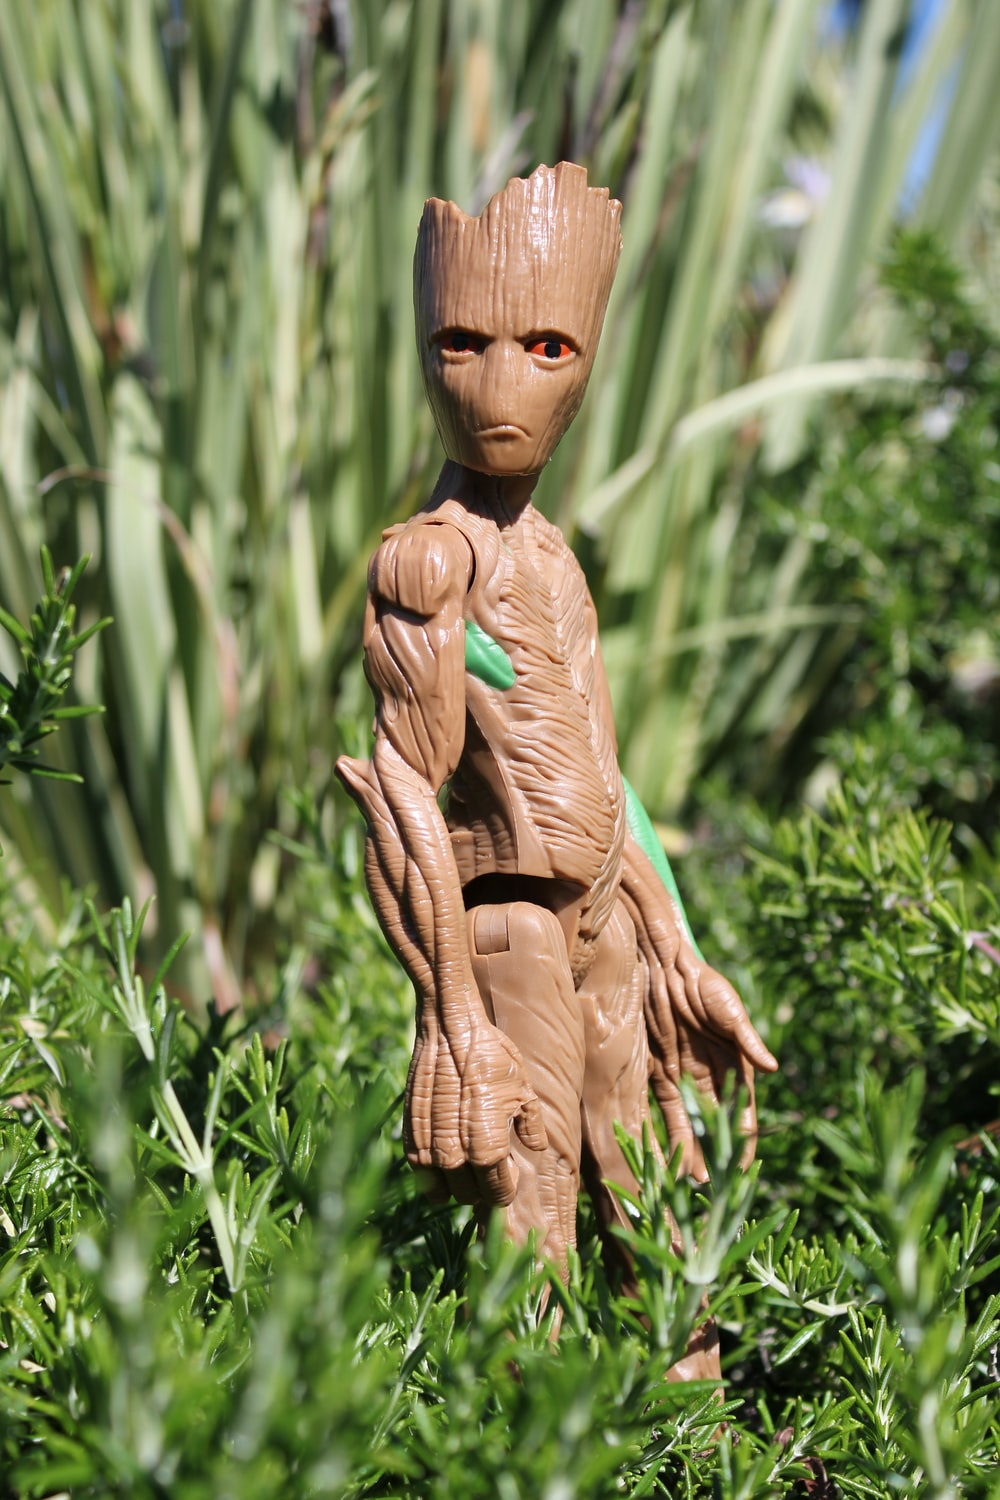 brown Groot action figure